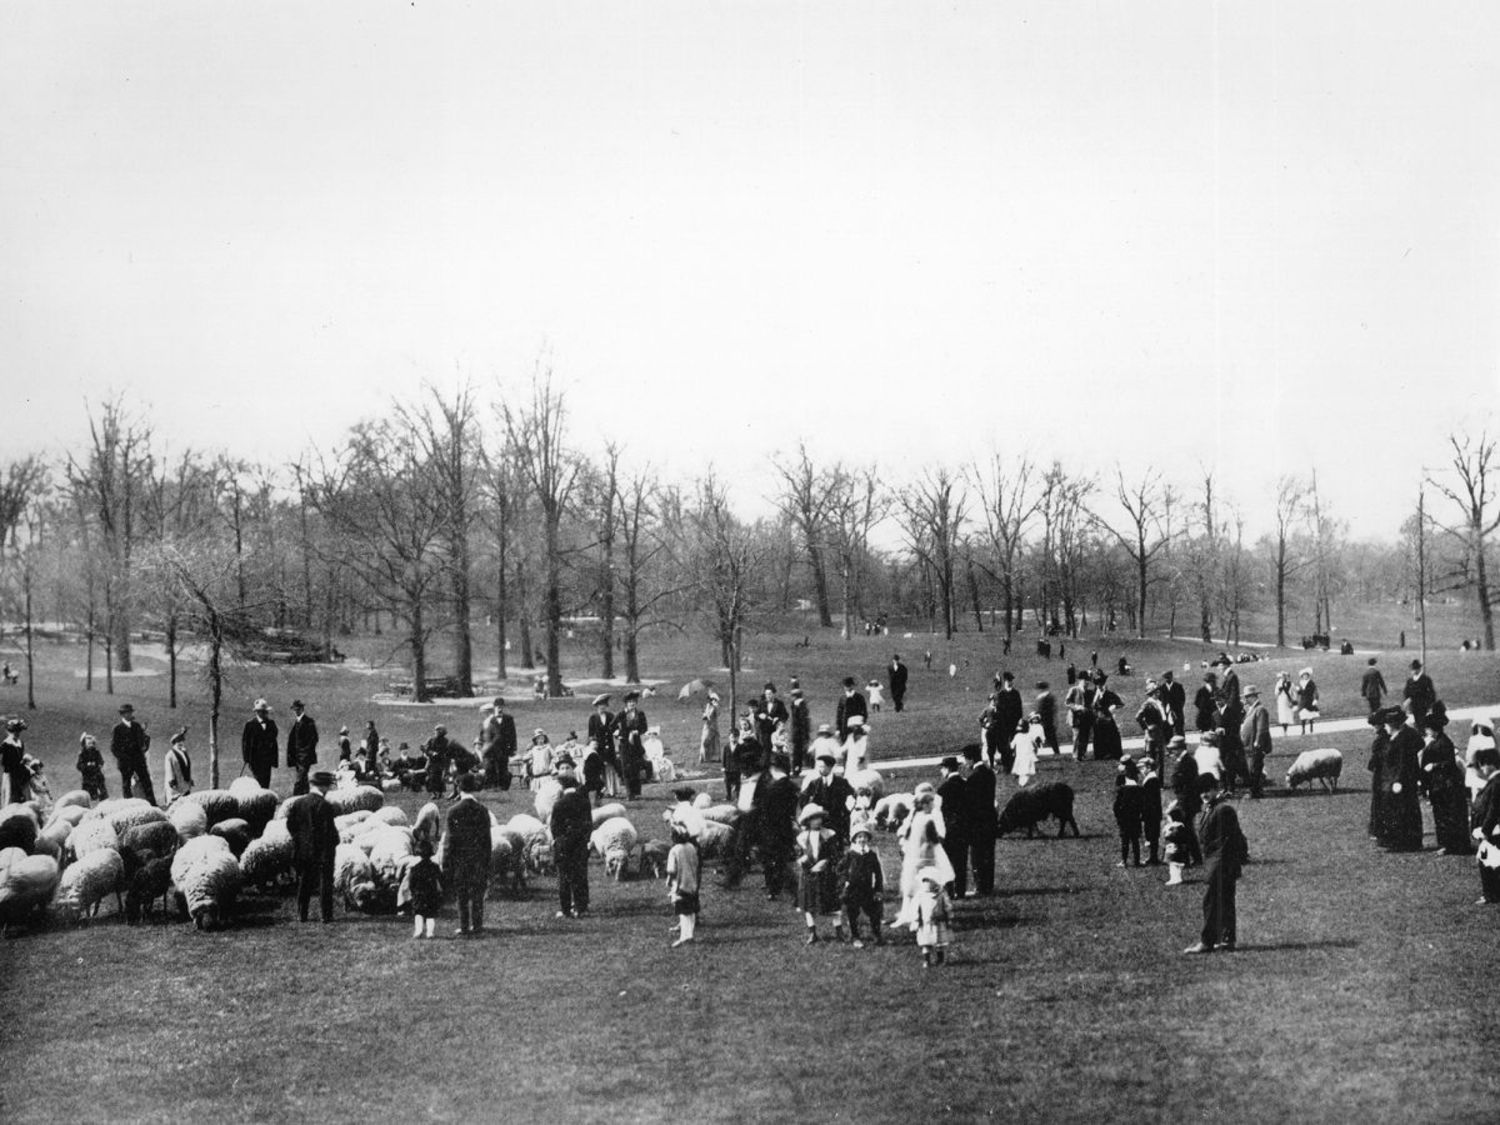 Sheep and admirers on the Long Meadow, Prospect Park, circa 1895.